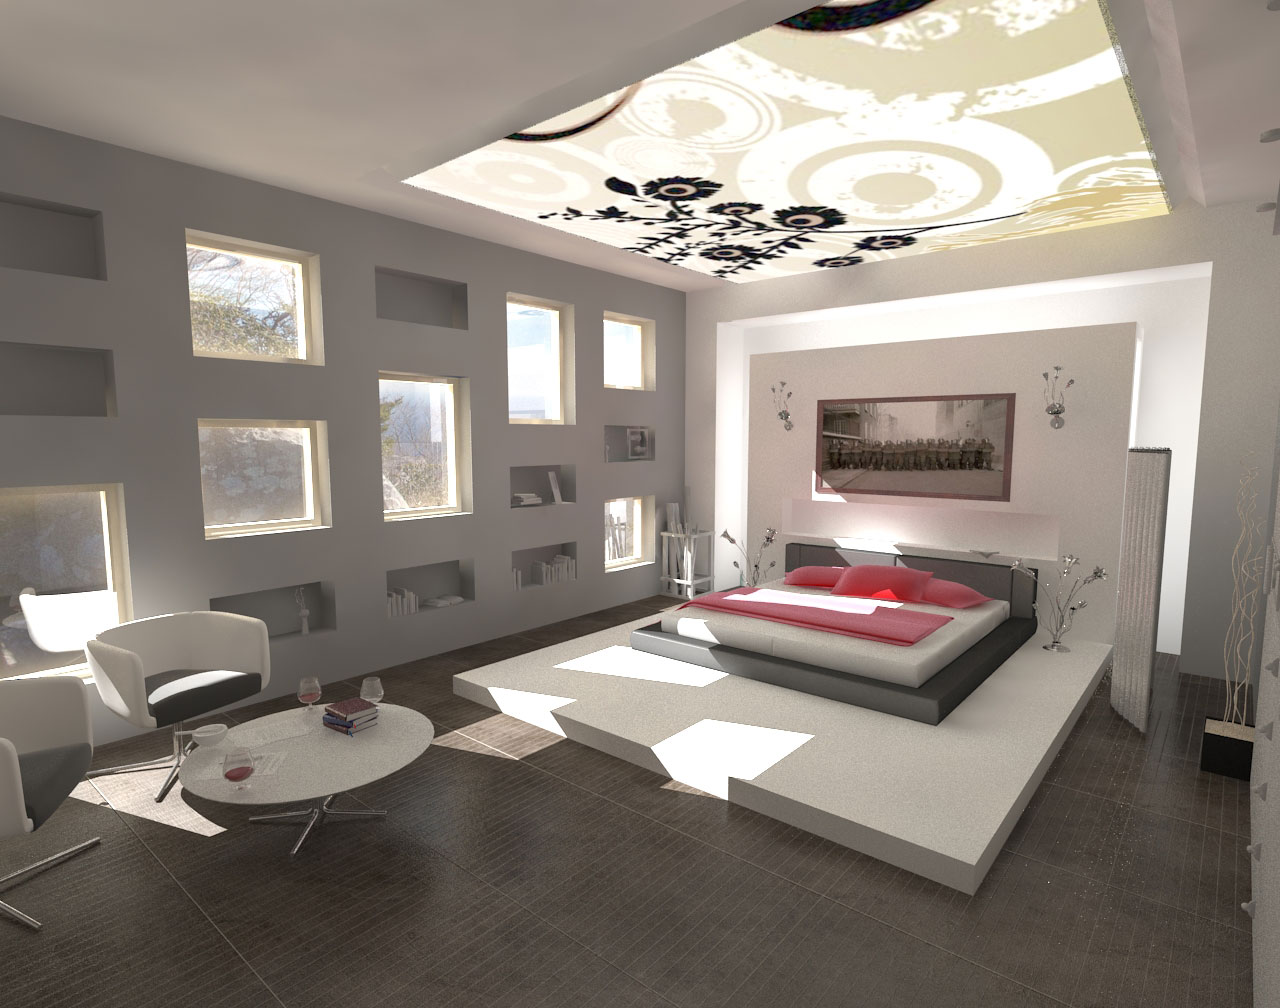 Decorations minimalist design modern bedroom interior for Modern bedroom designs ideas